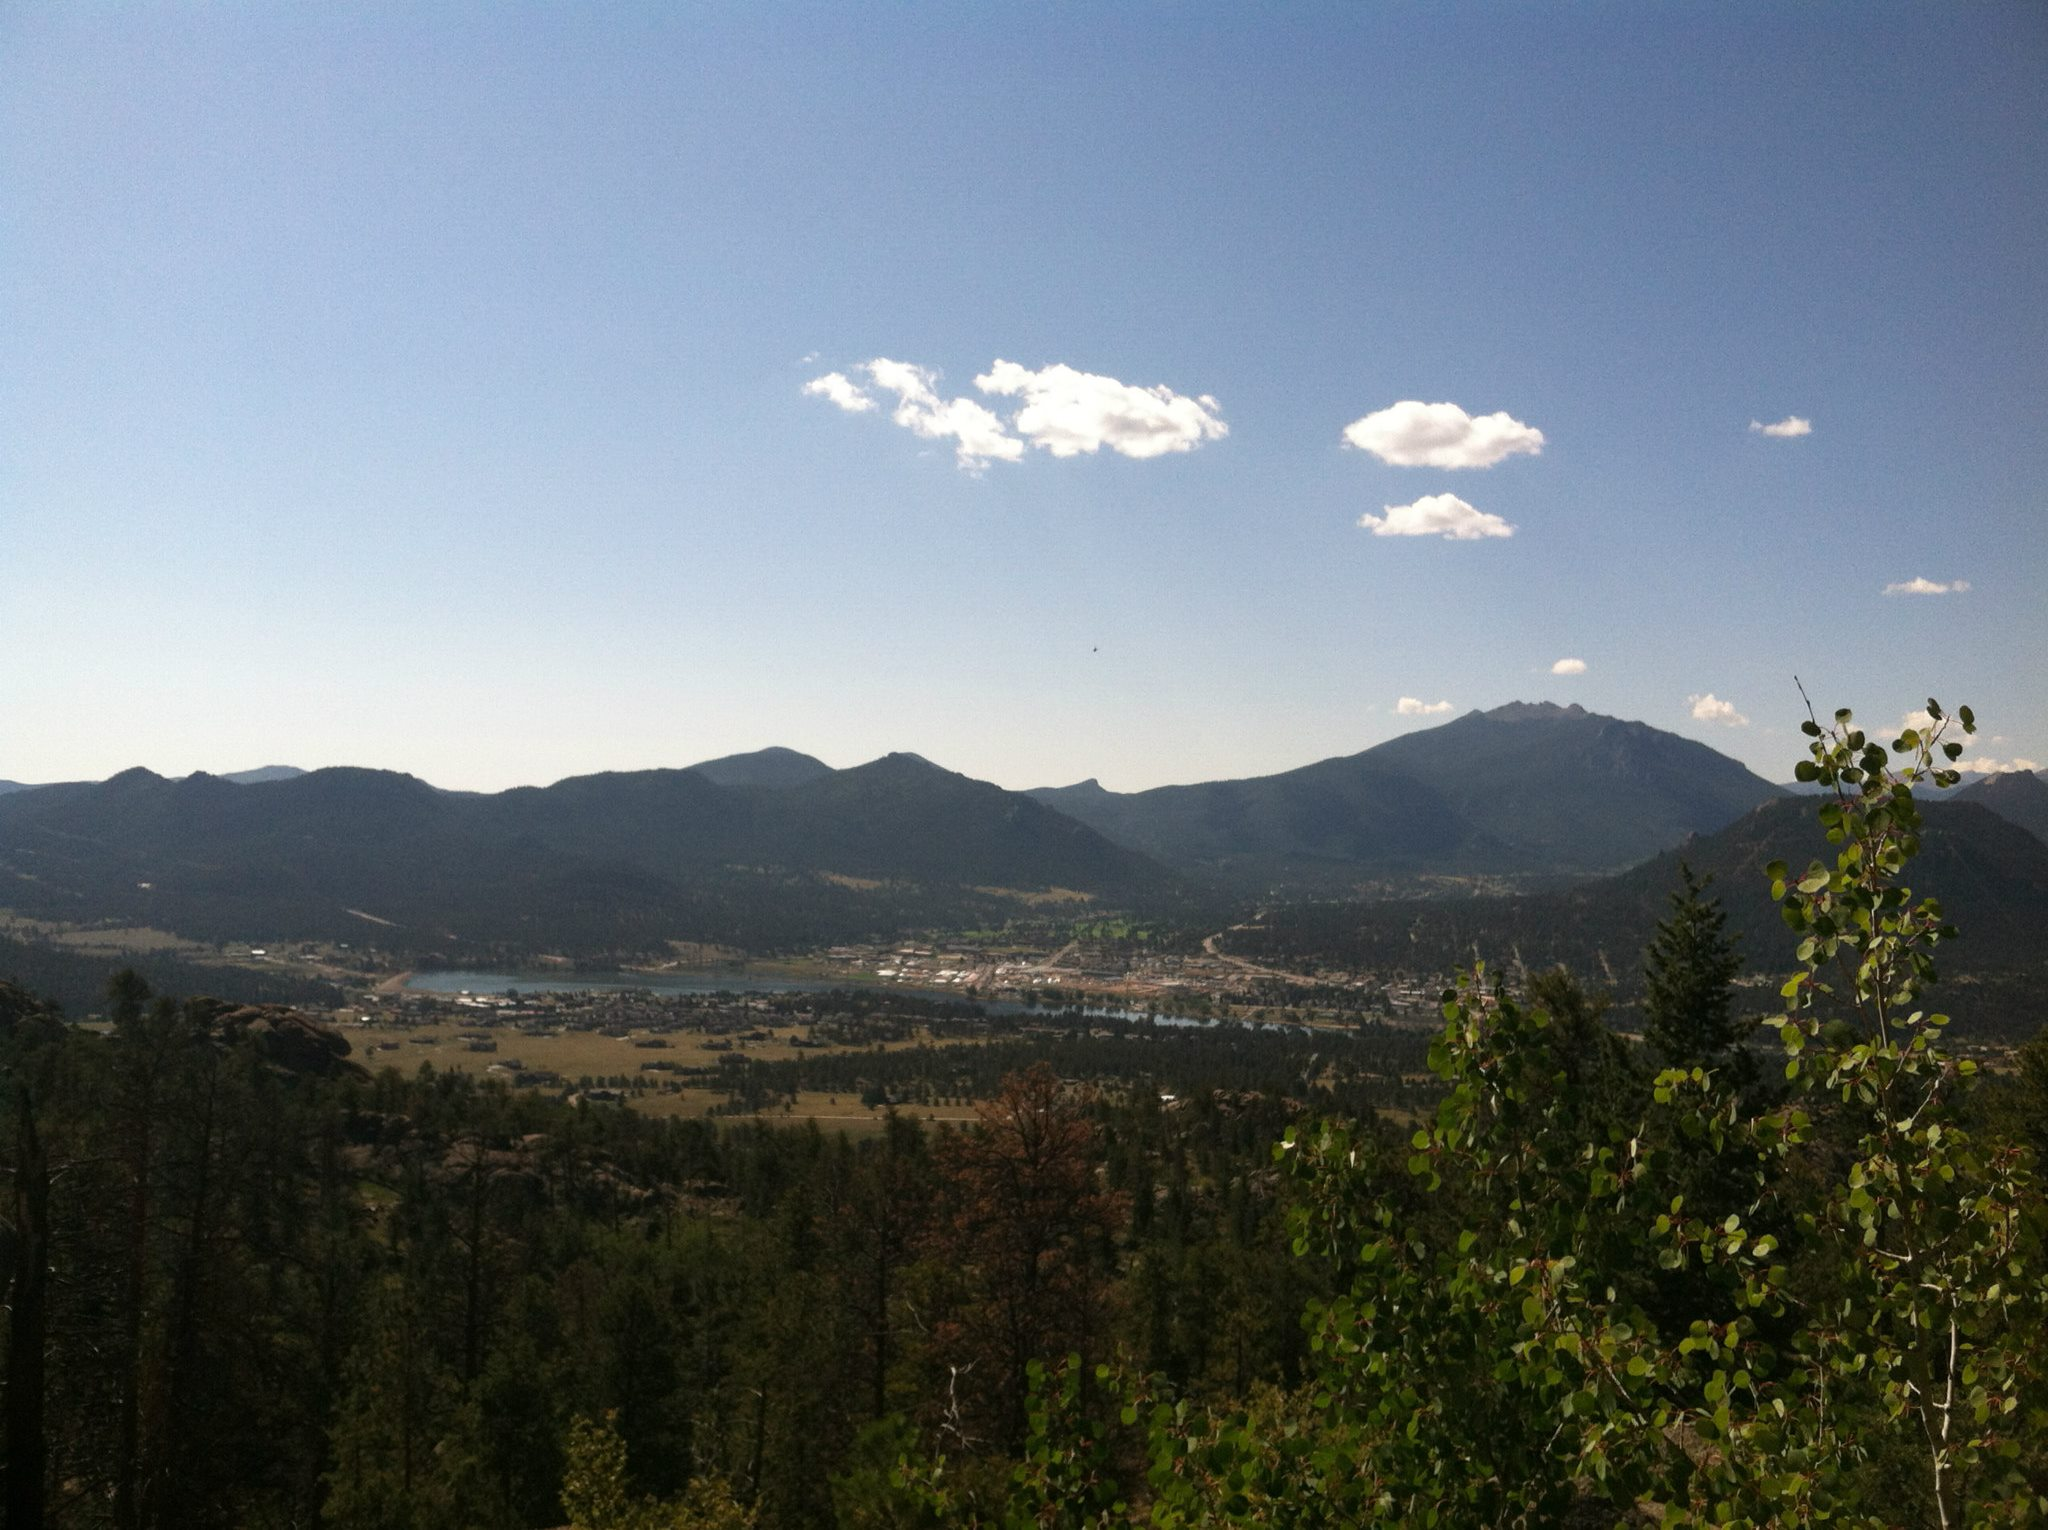 view from gem lake trail of the town of estes park, lake estes, and the Rocky Mountains